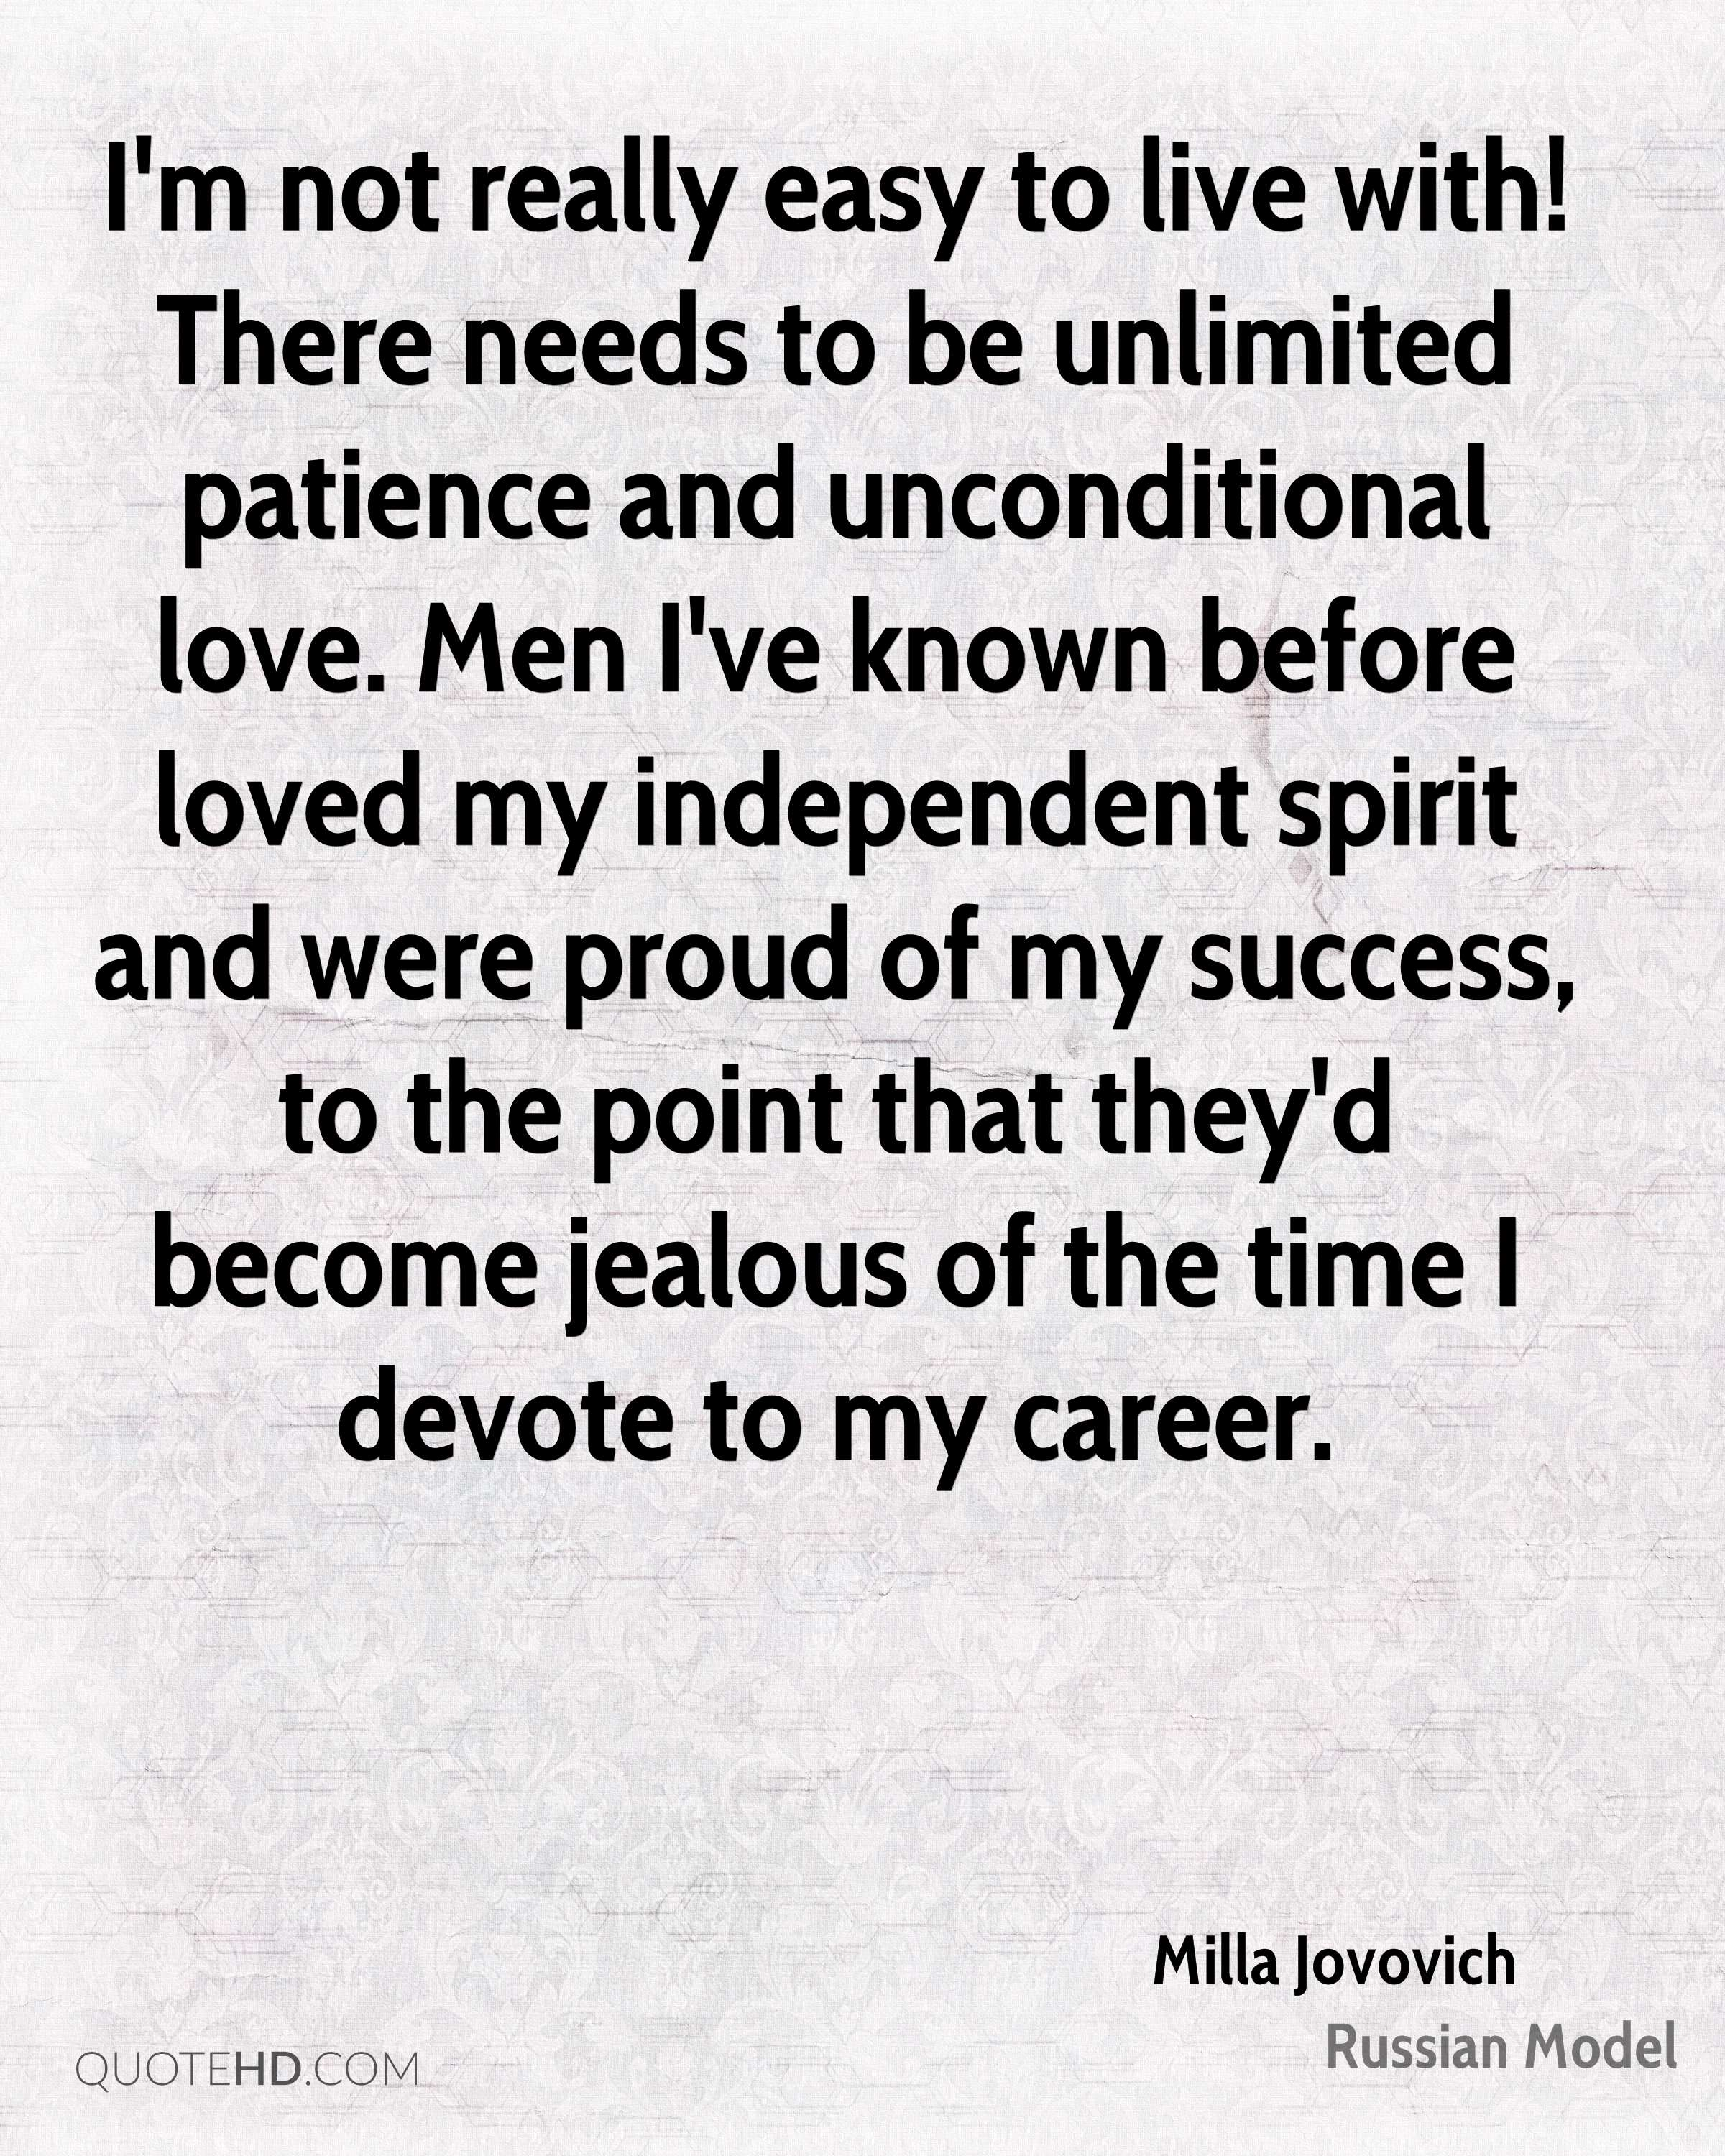 I'm not really easy to live with! There needs to be unlimited patience and unconditional love. Men I've known before loved my independent spirit and were proud of my success, to the point that they'd become jealous of the time I devote to my career.